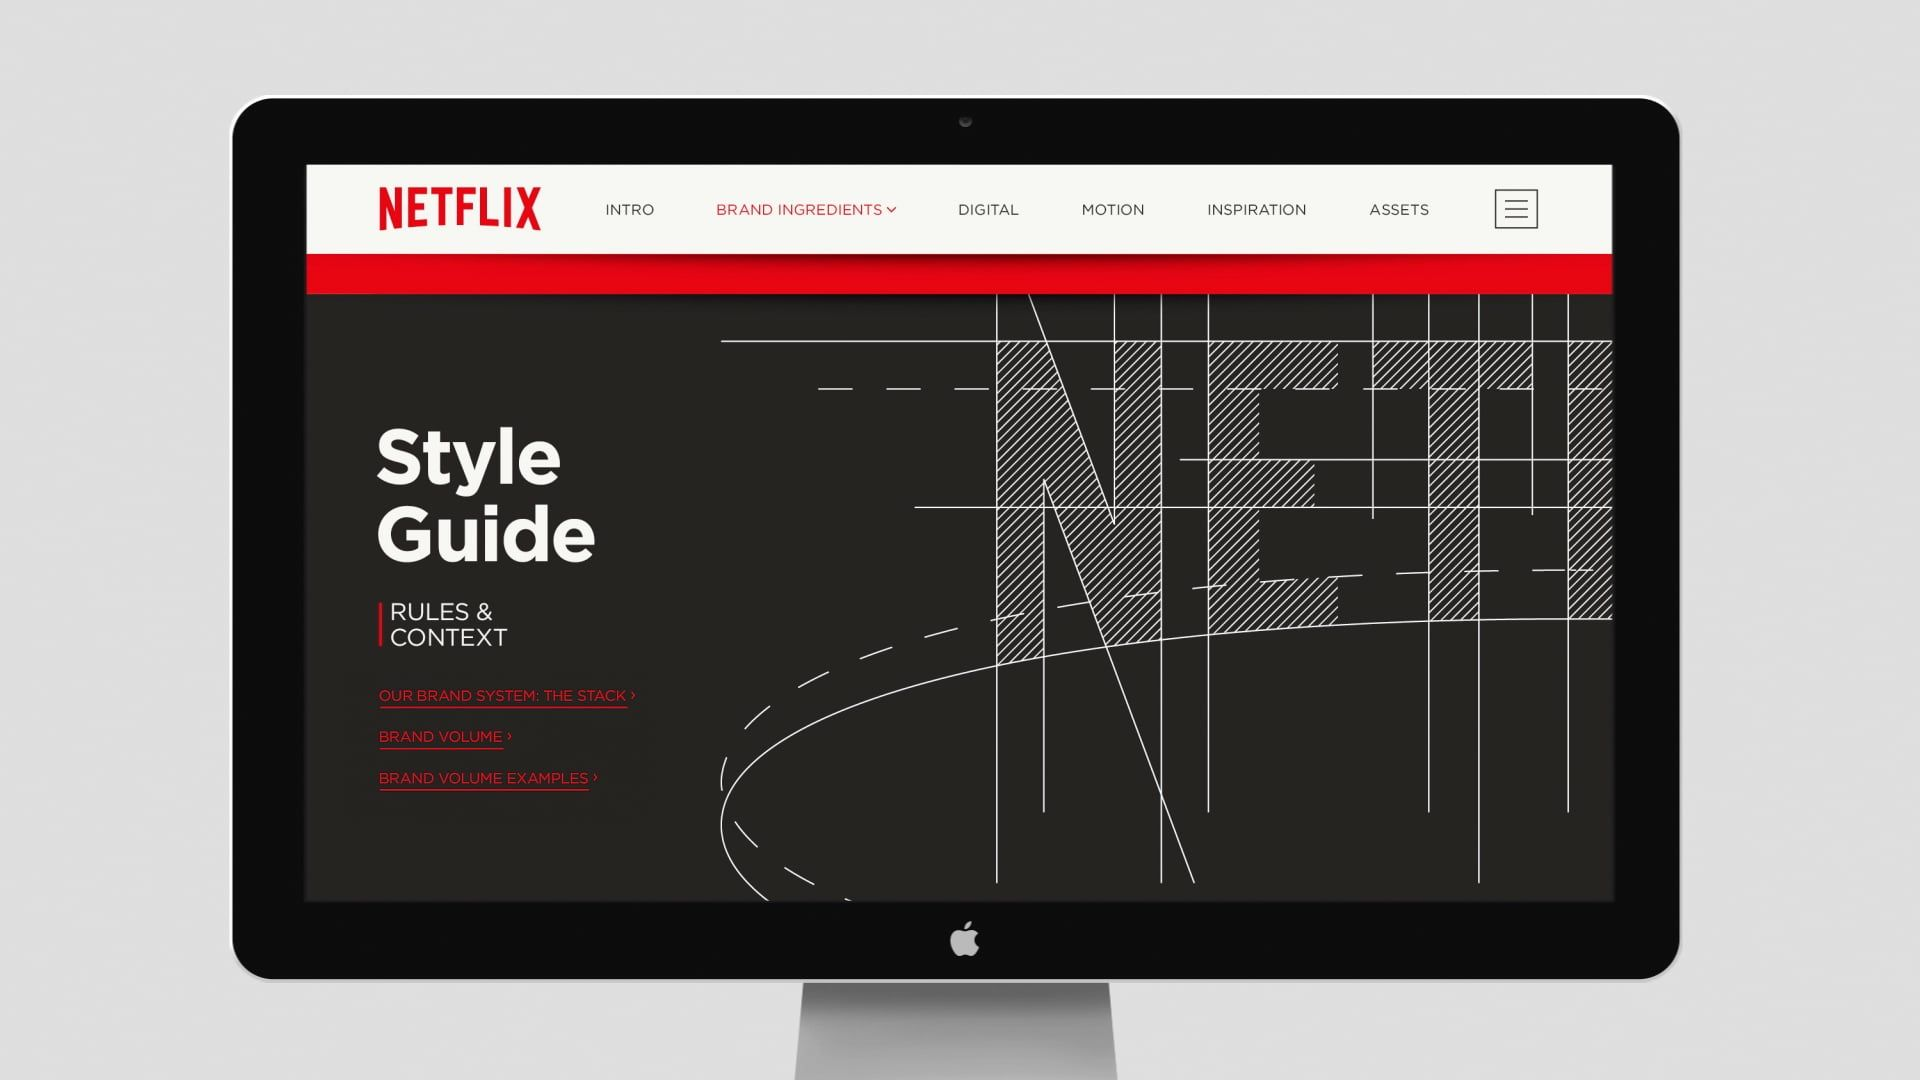 Netflix Branding Brand Hub // The Stack is a visual